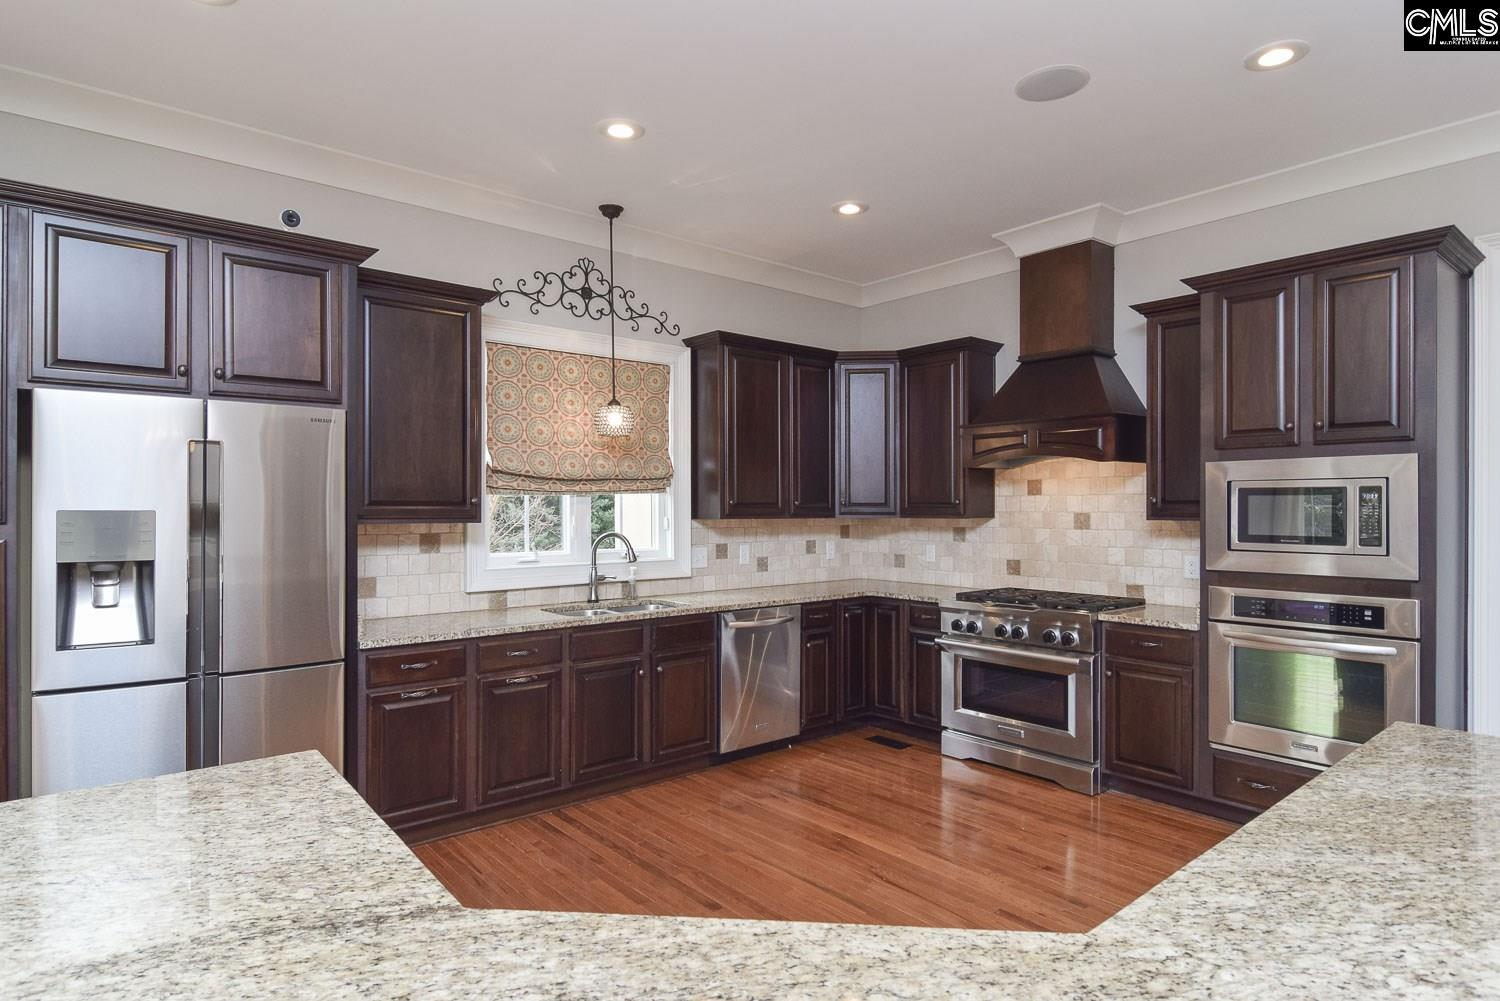 172 Island View Elgin, SC 29045